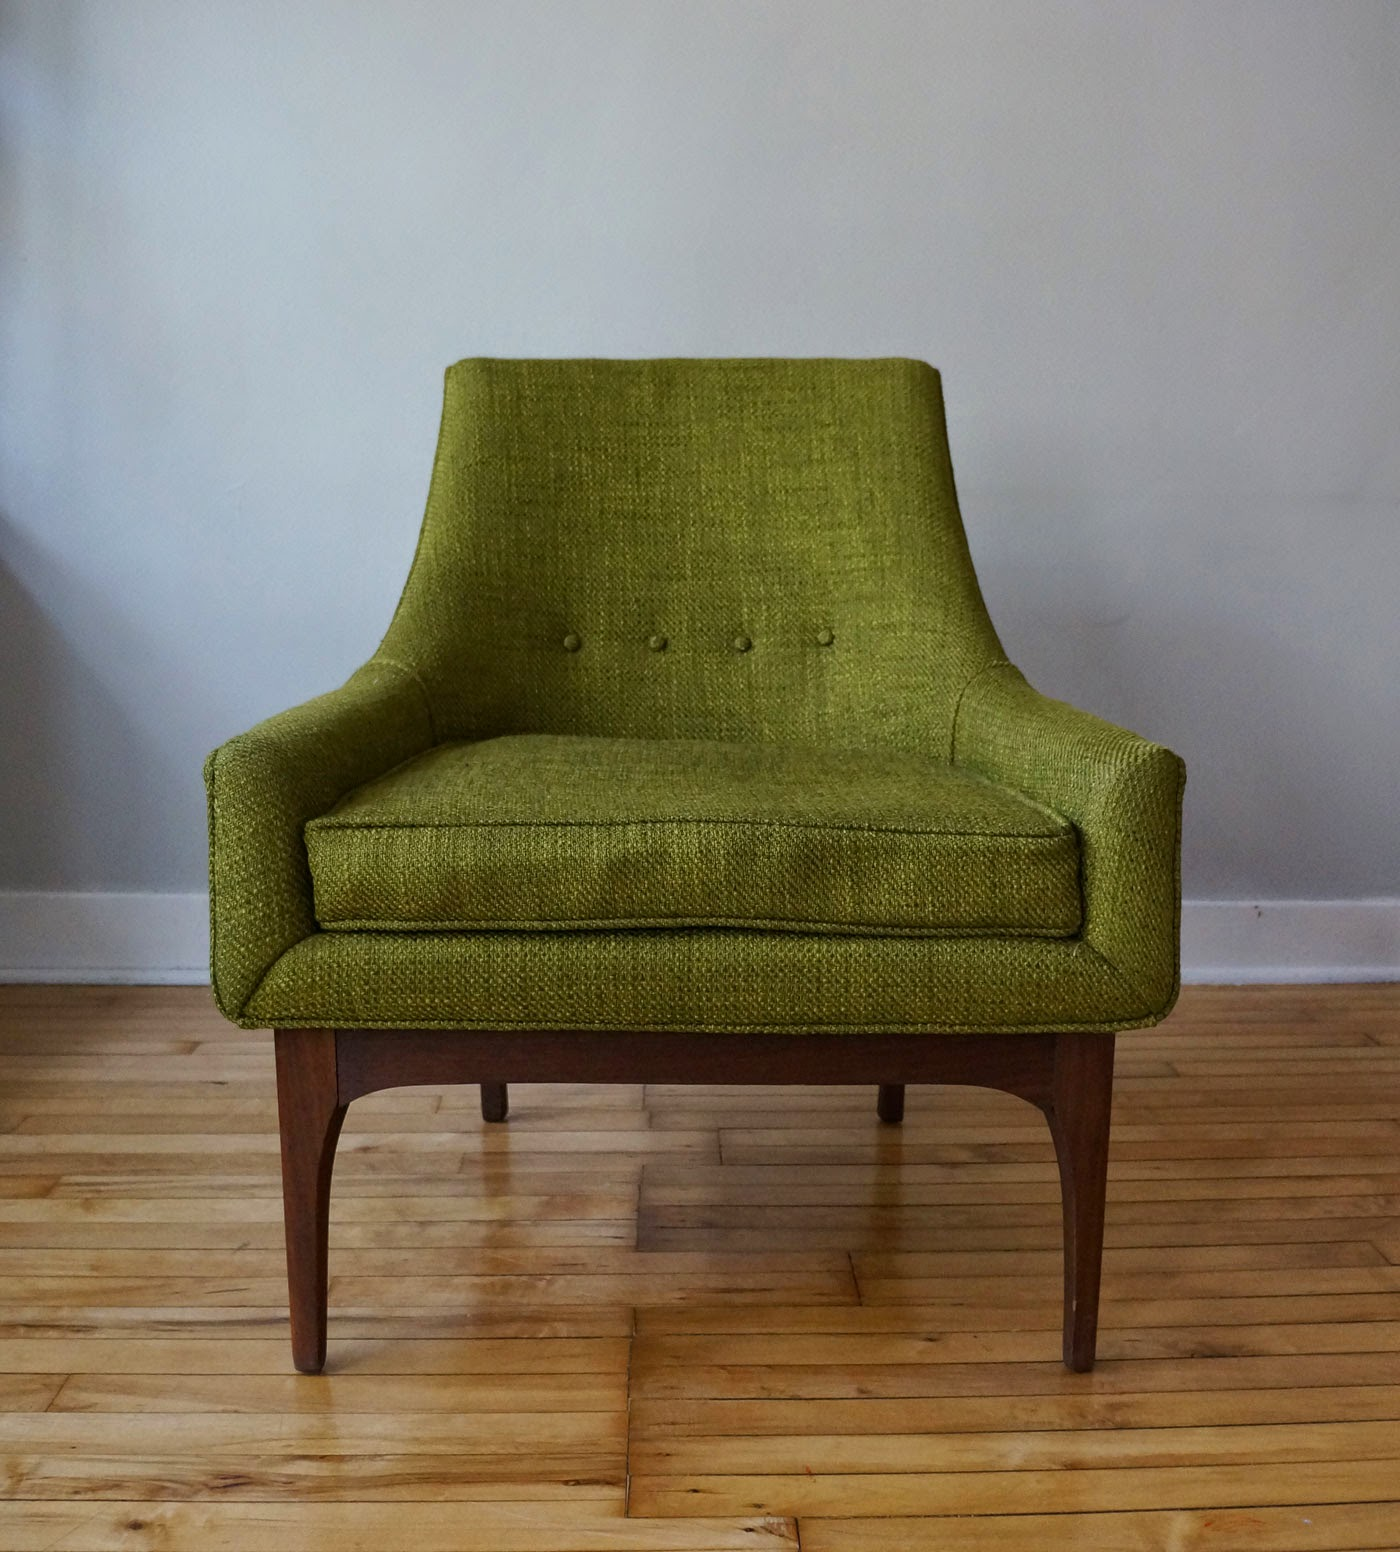 This Green Chair Is Delightful, Image Found Here.